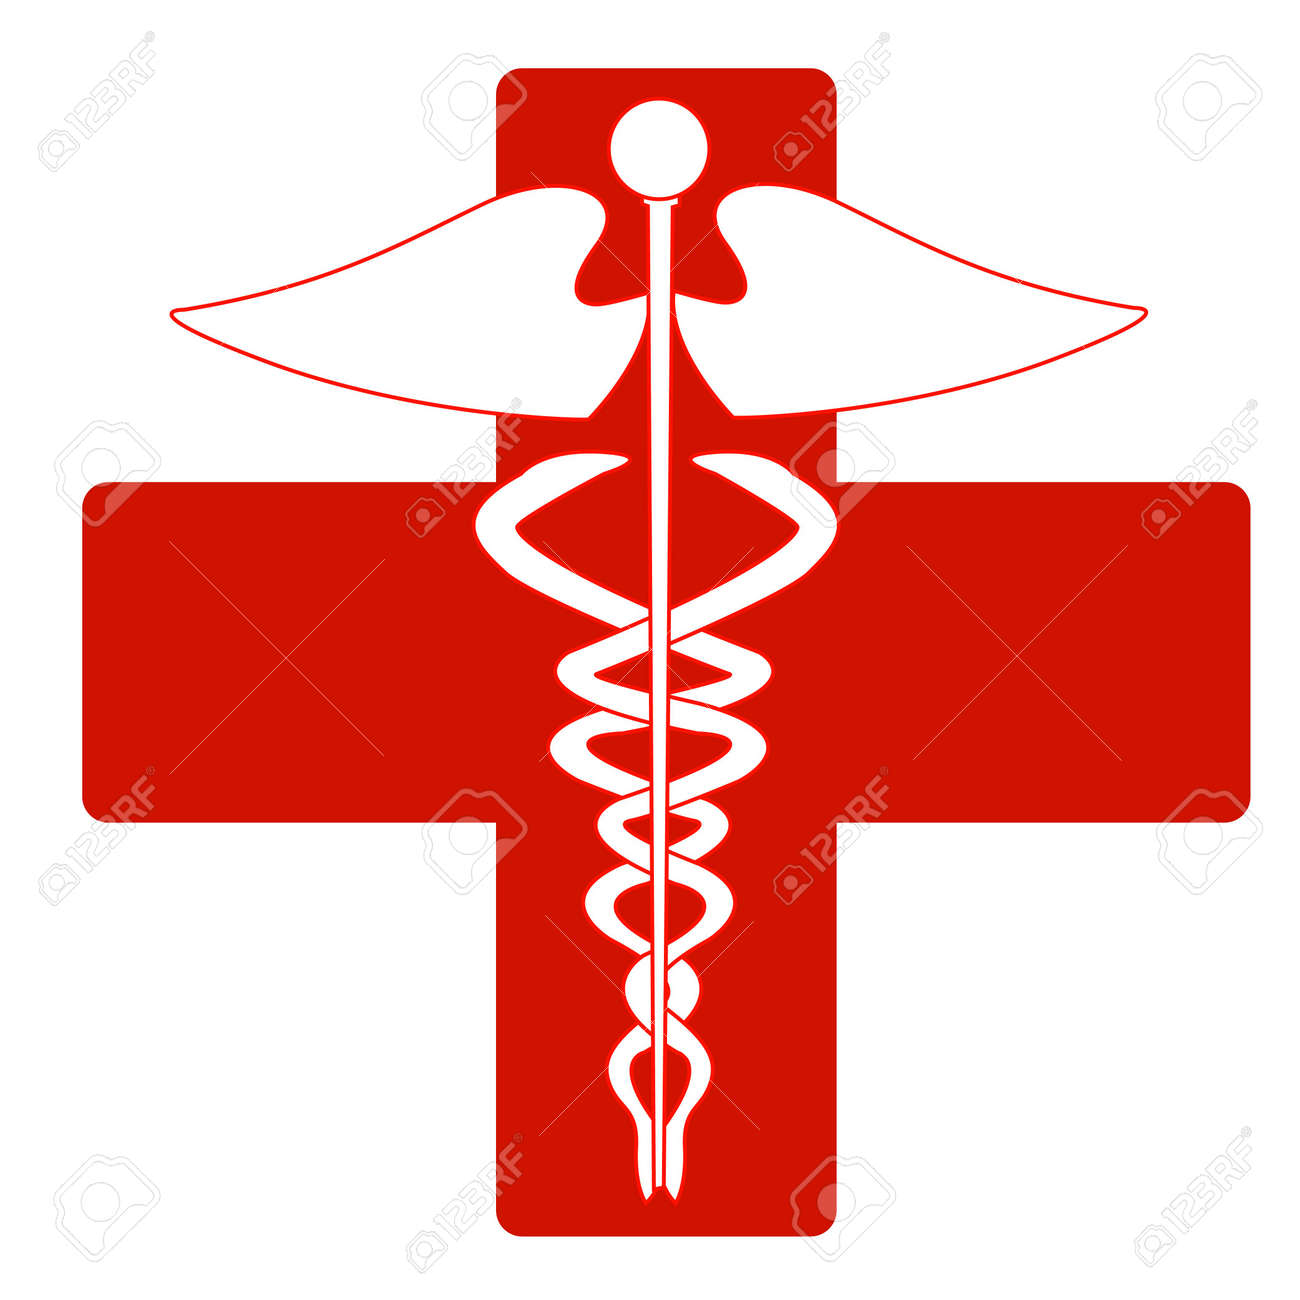 Medical Caduceus Royalty Free Cliparts, Vectors, And Stock ...